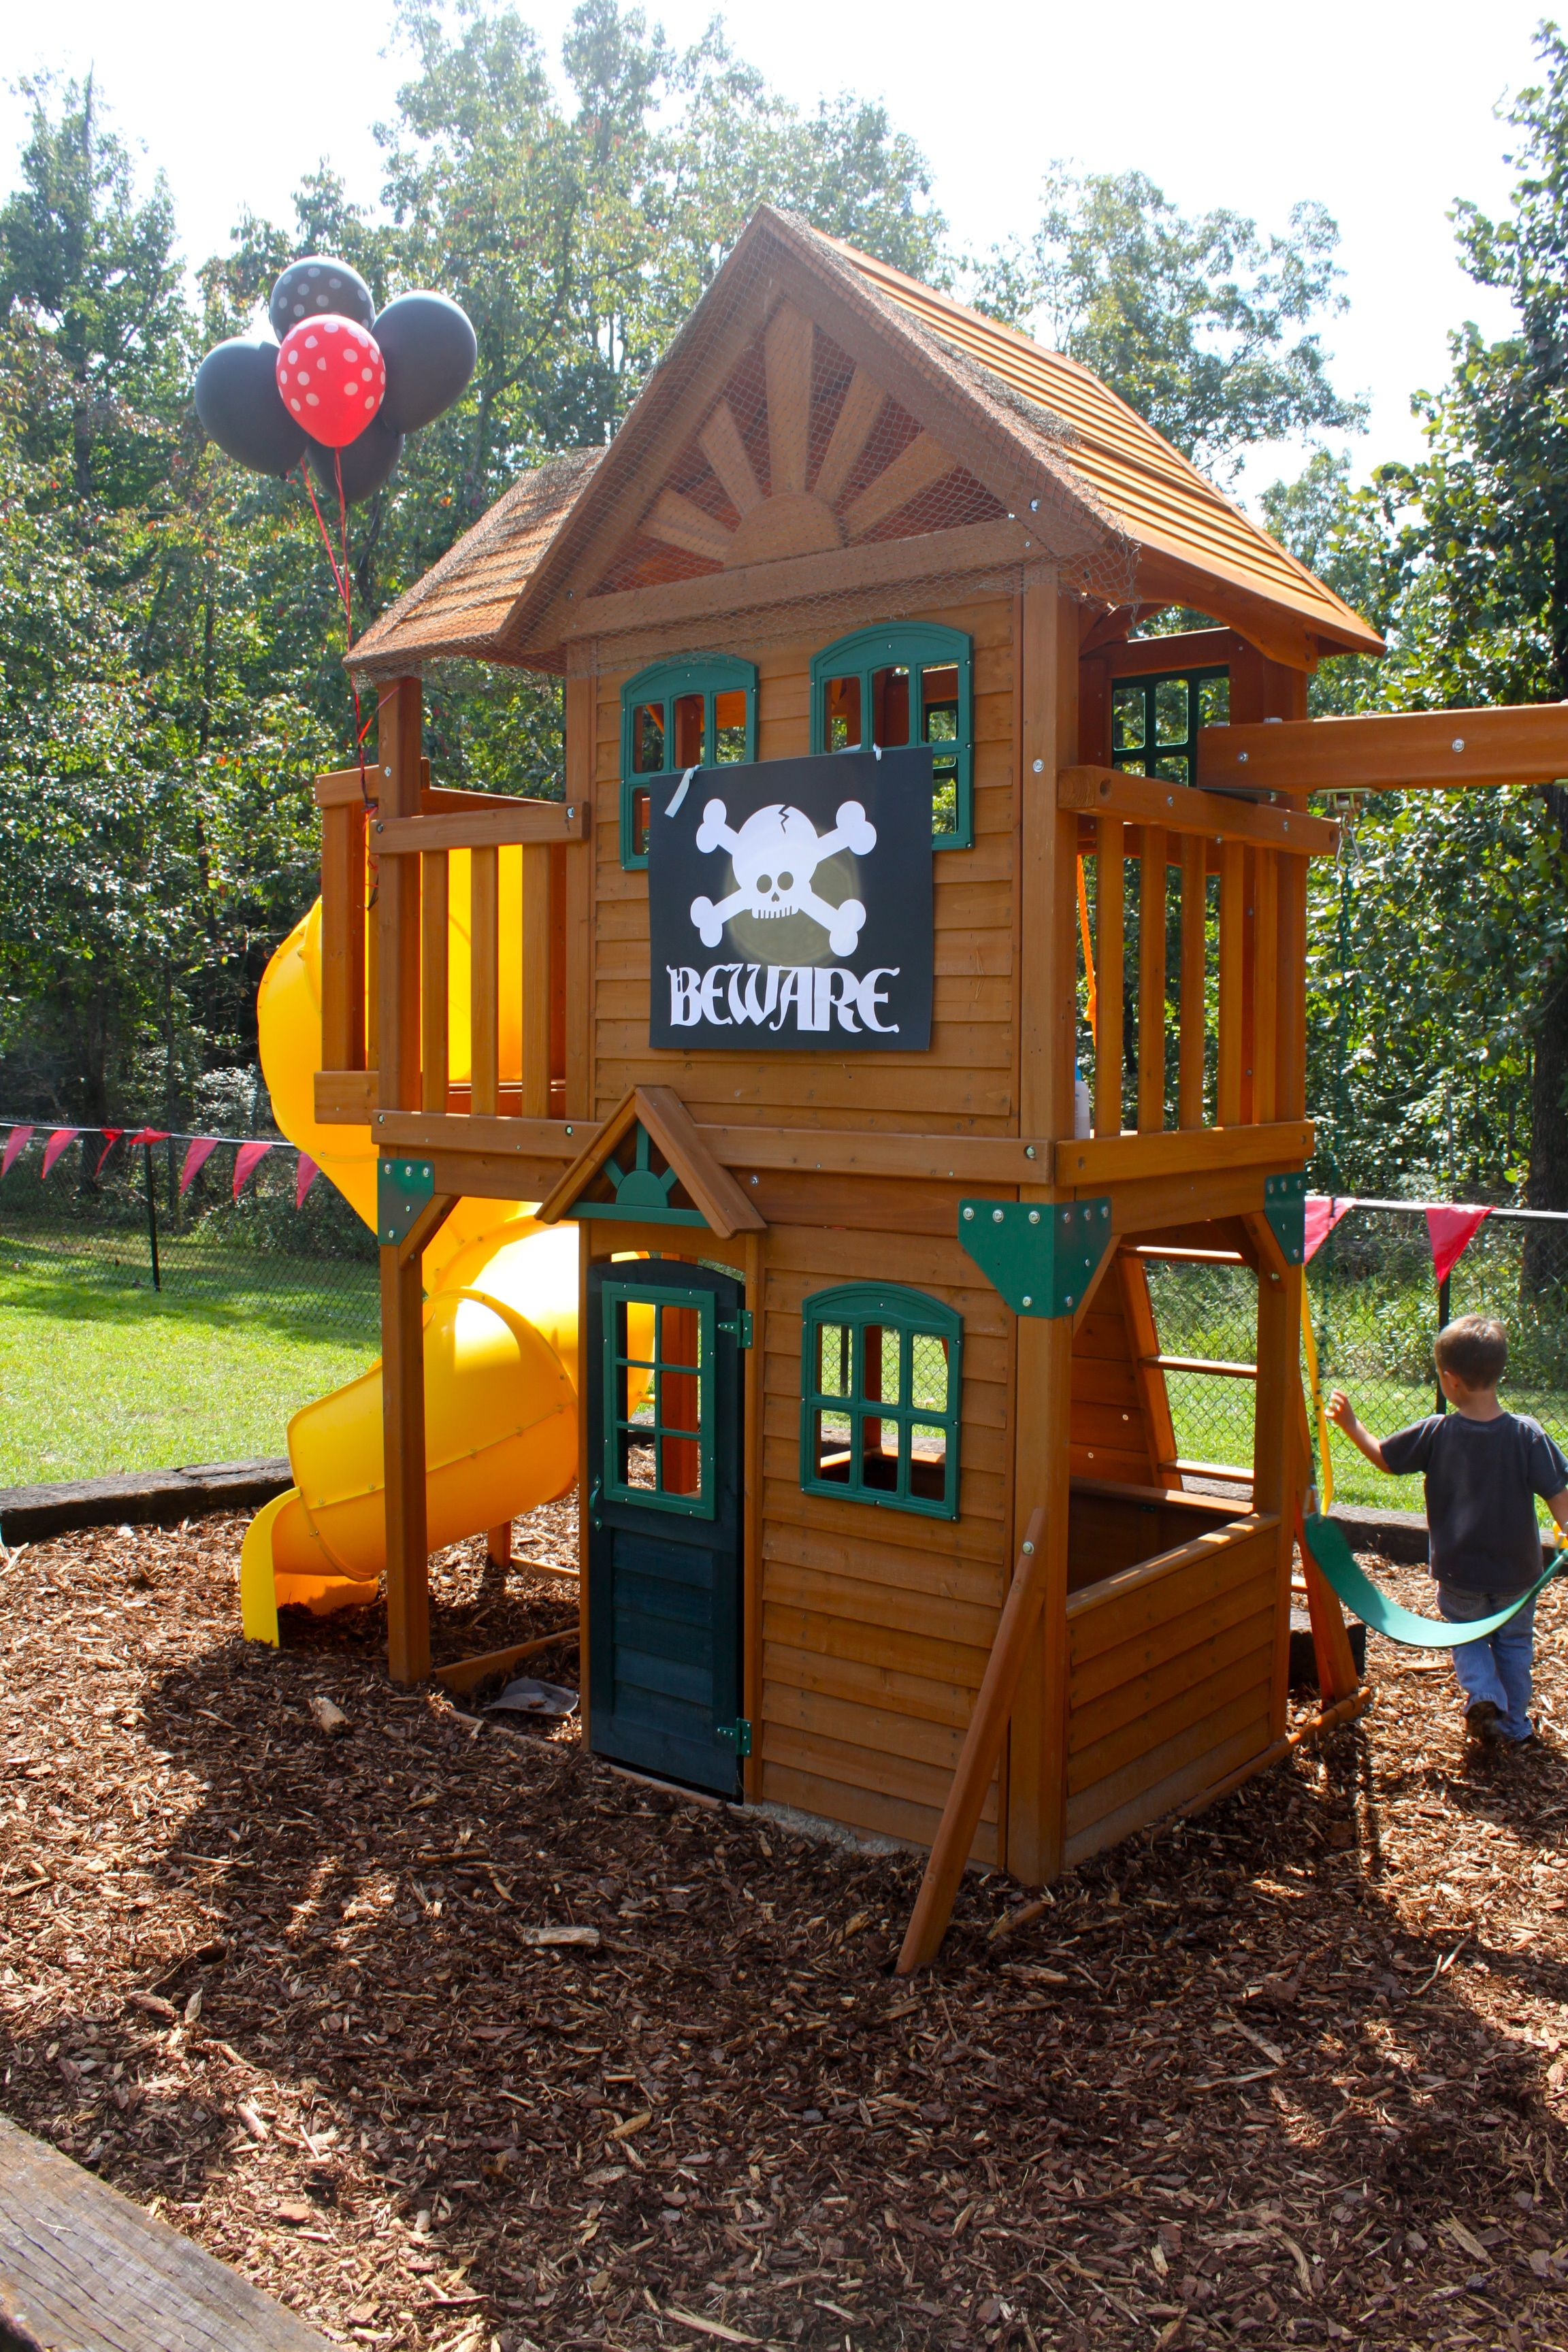 Decorate Outdoor Playset Chickerson And Wickewa Backyard Playground